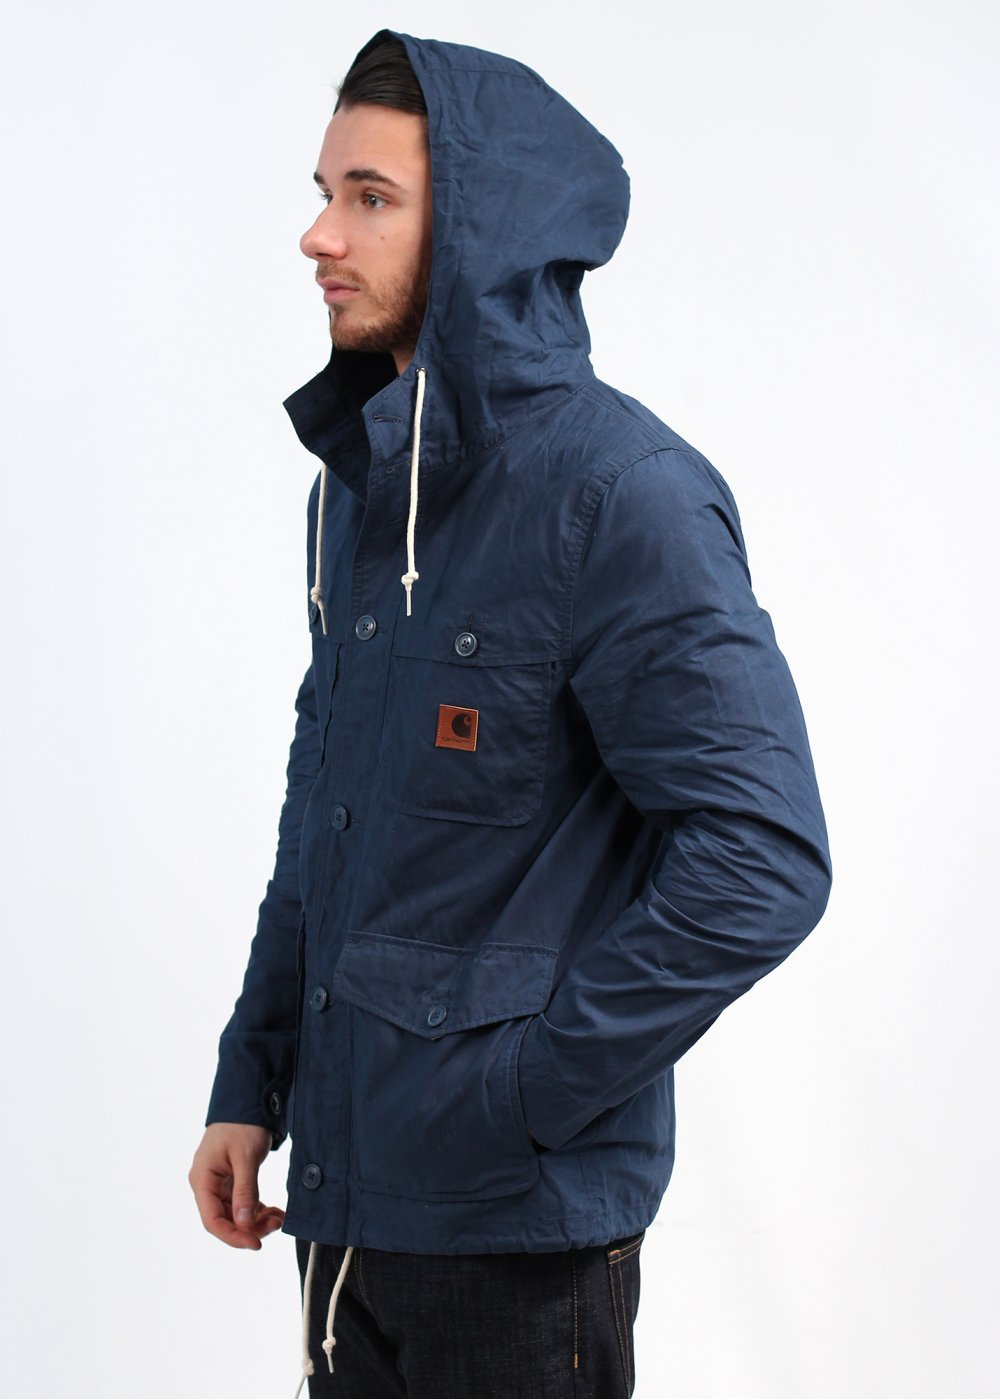 Veste carhartt nimbus pullover ou coat vos recherches for Idees lucratives